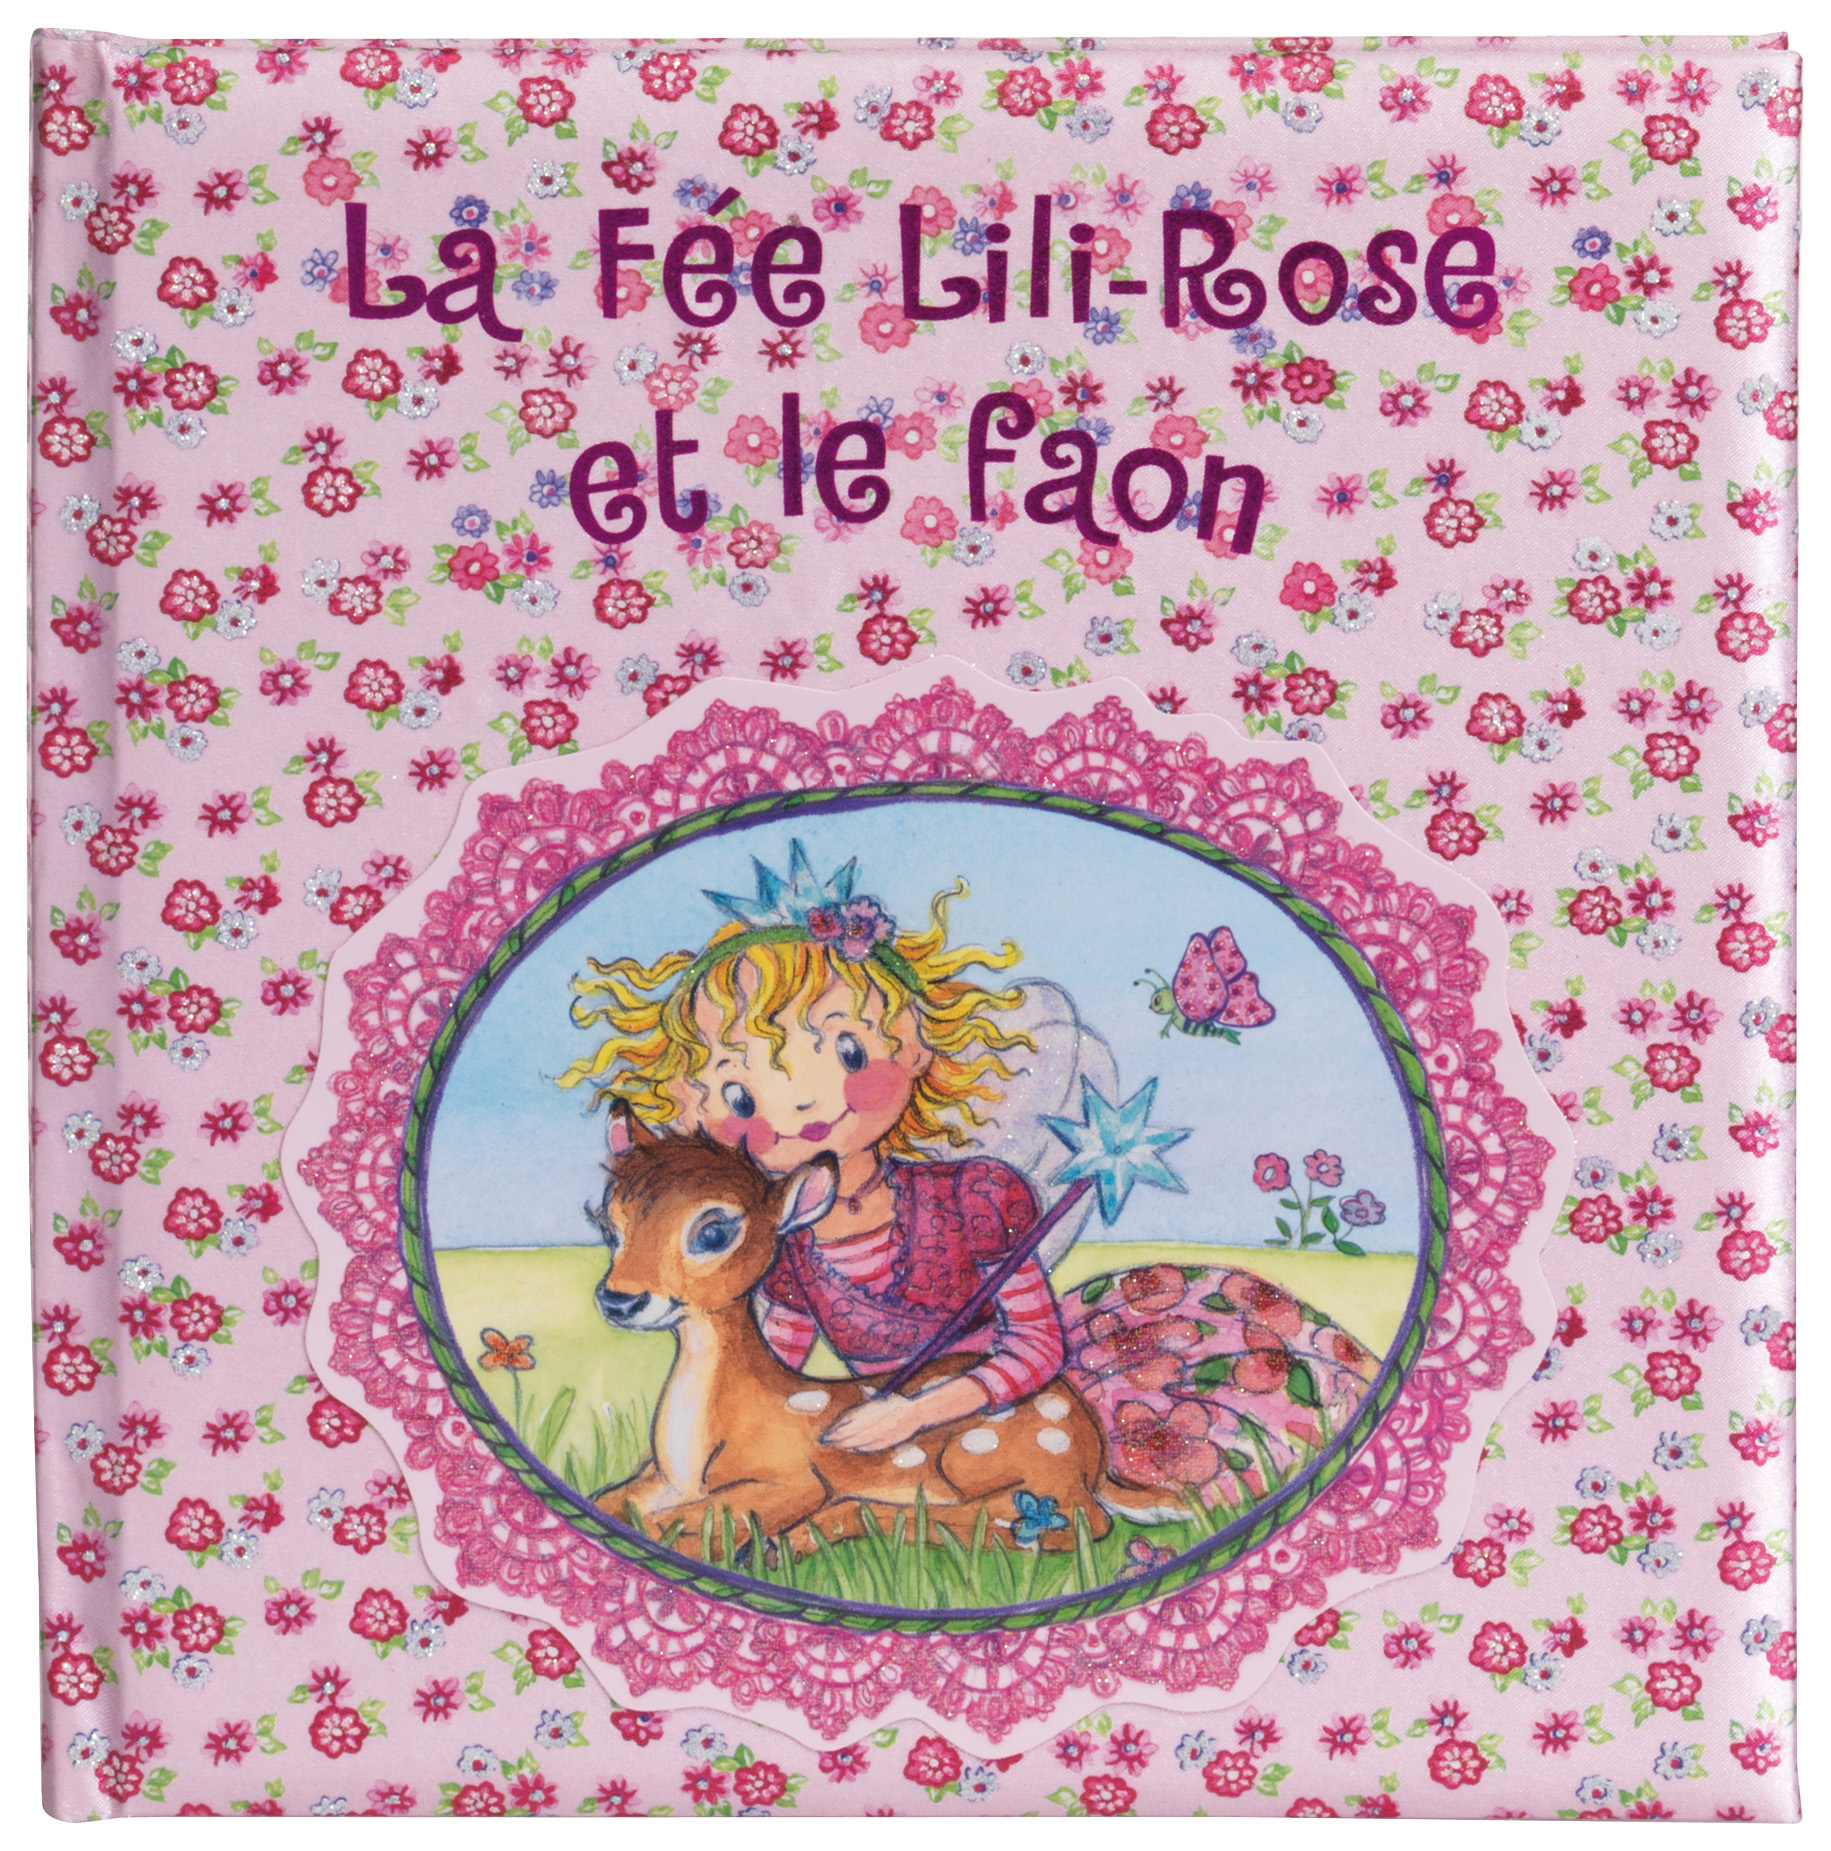 LA FEE LILI-ROSE ET LE FAON